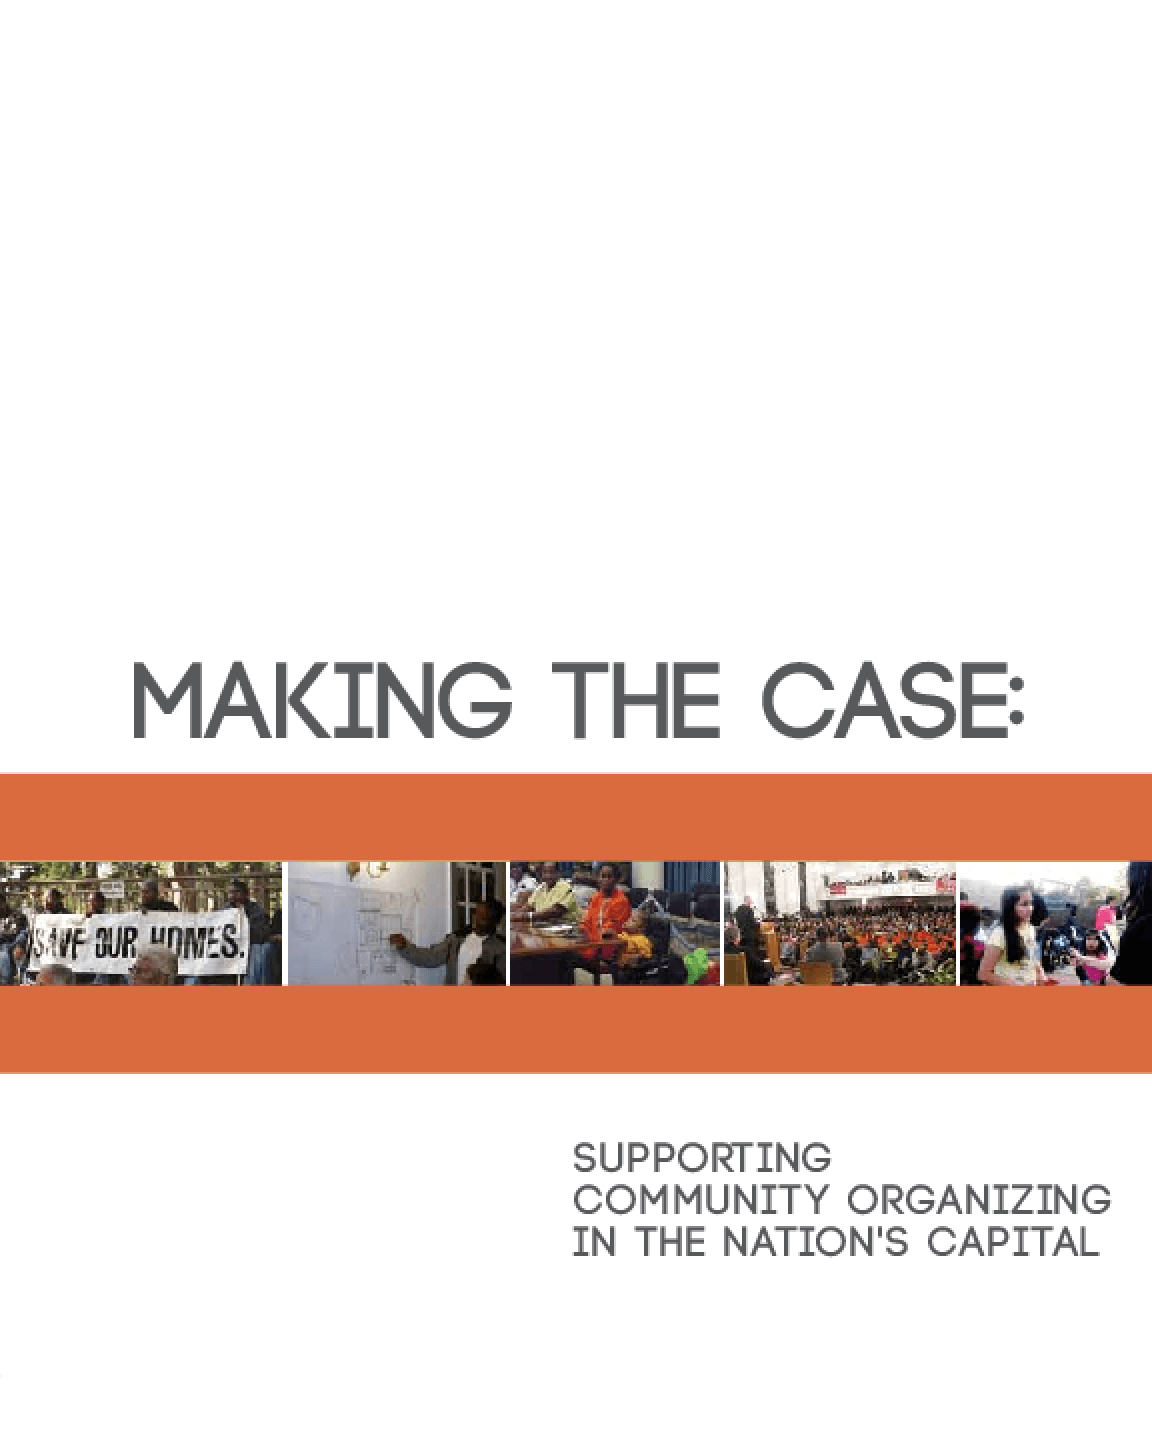 Making the Case: Supporting Community Organizing in the Nation's Capital